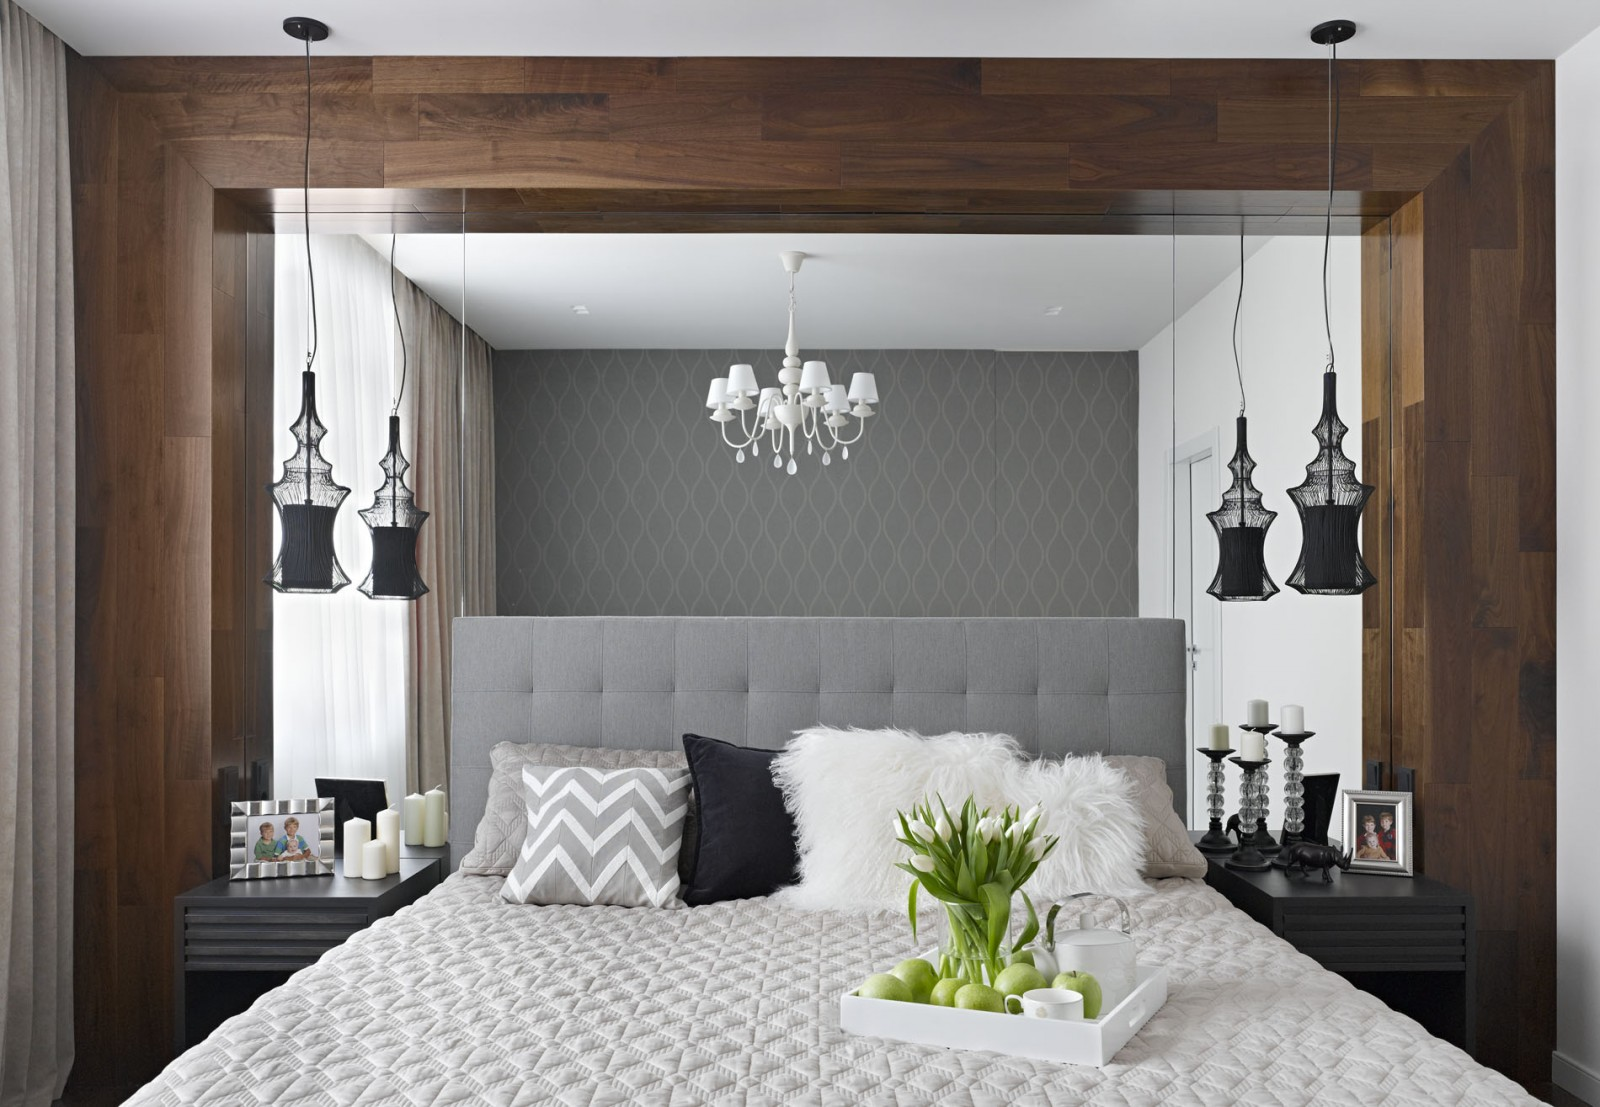 Small Room Decorating: 20 Small Bedroom Ideas That Will Leave You Speechless